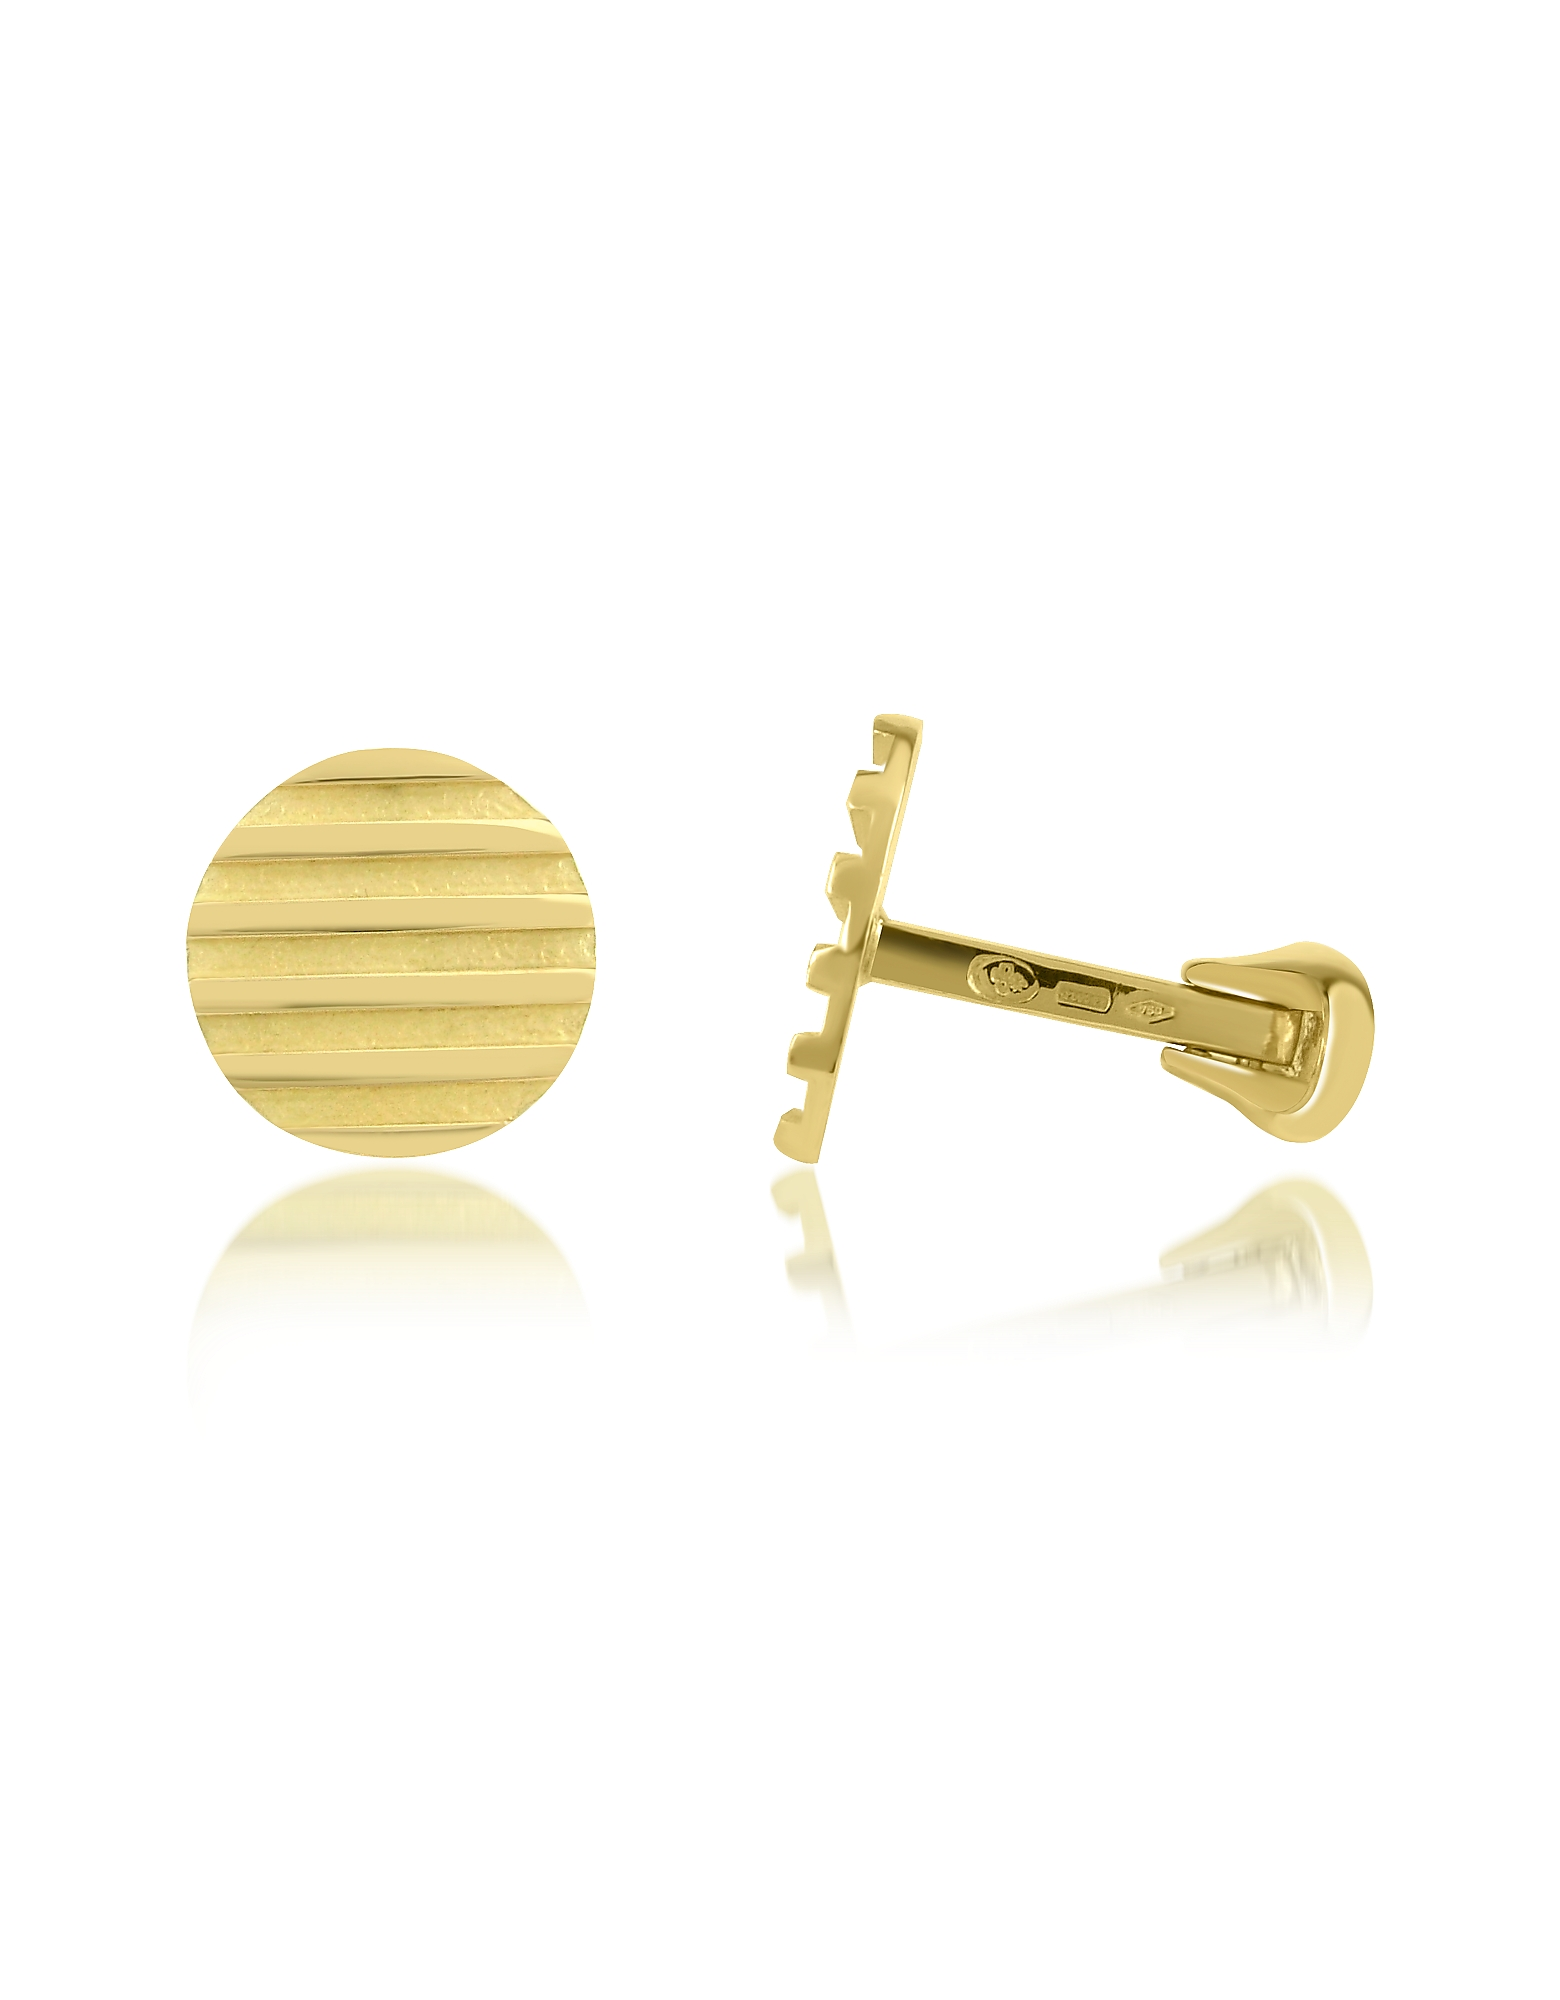 Torrini Cufflinks, Stripes - 18K Yellow Gold Round Cufflinks